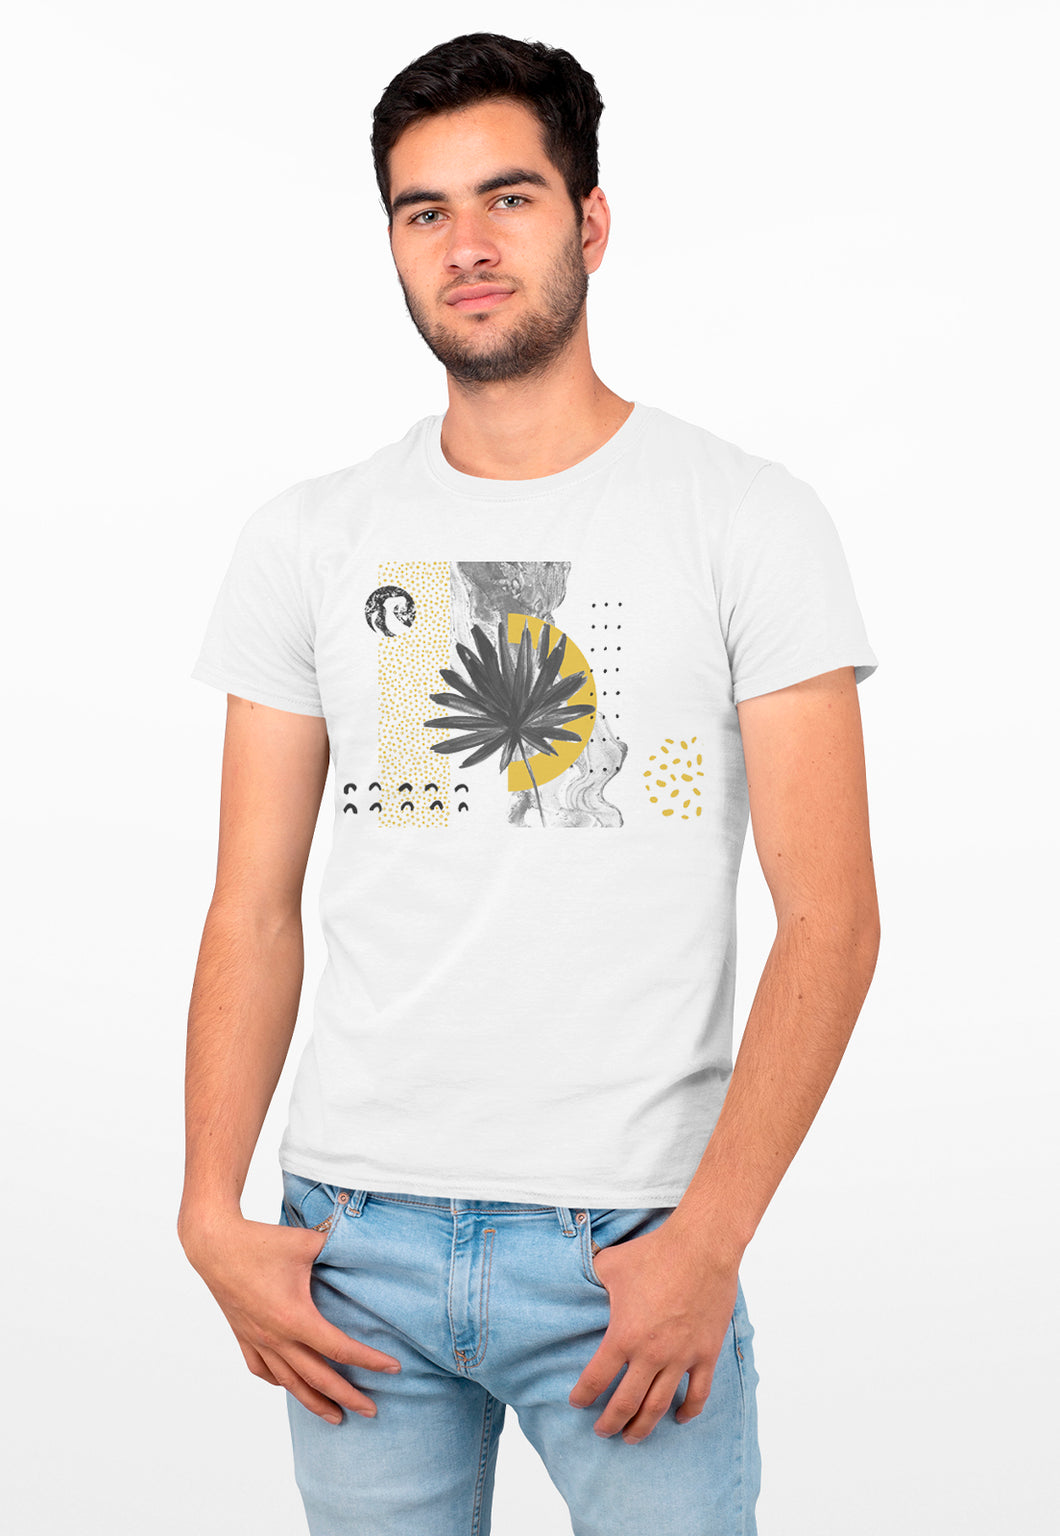 Camiseta Masculina Estampada Mirat - Yellow Summer